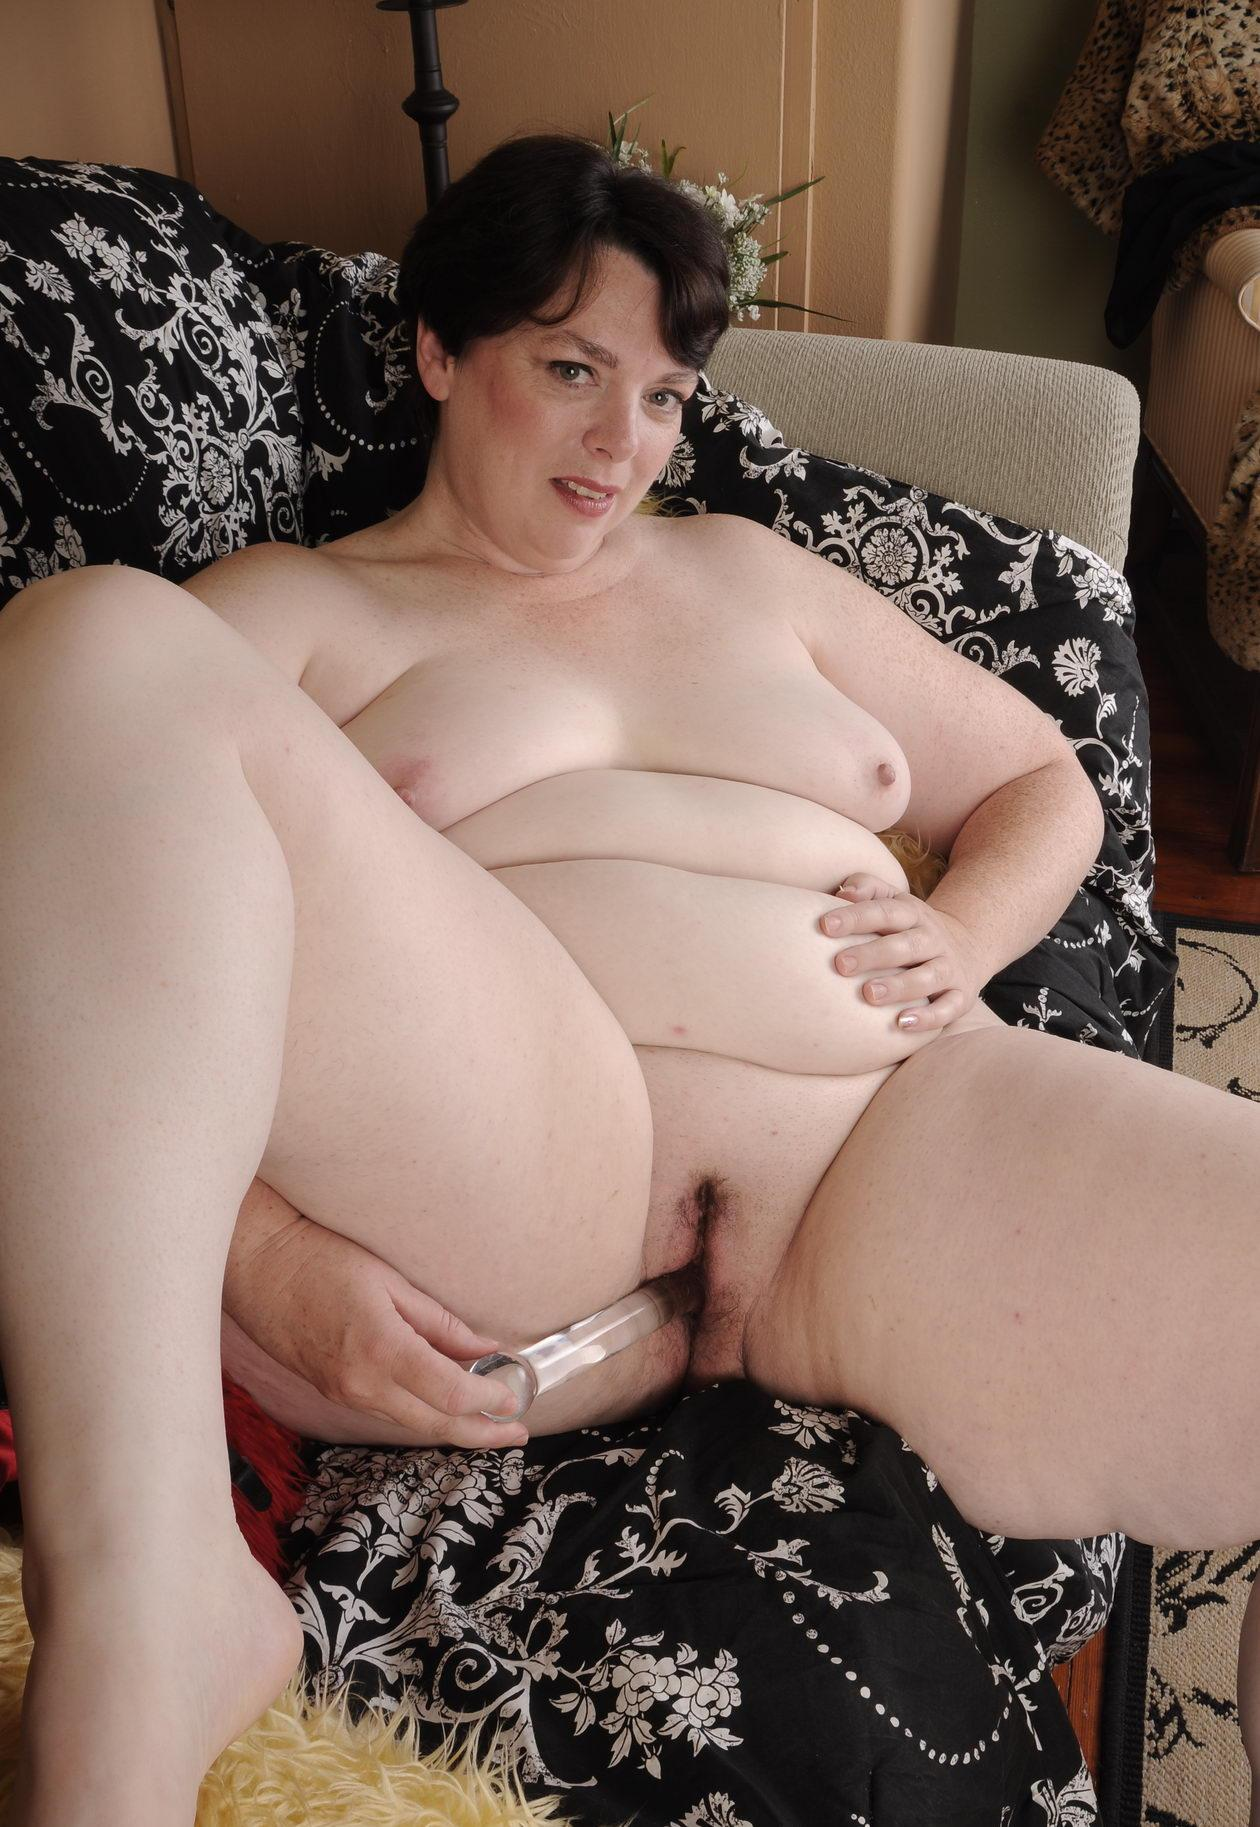 lustfull granny Is addicted has no one to fuck her huge bbw hole